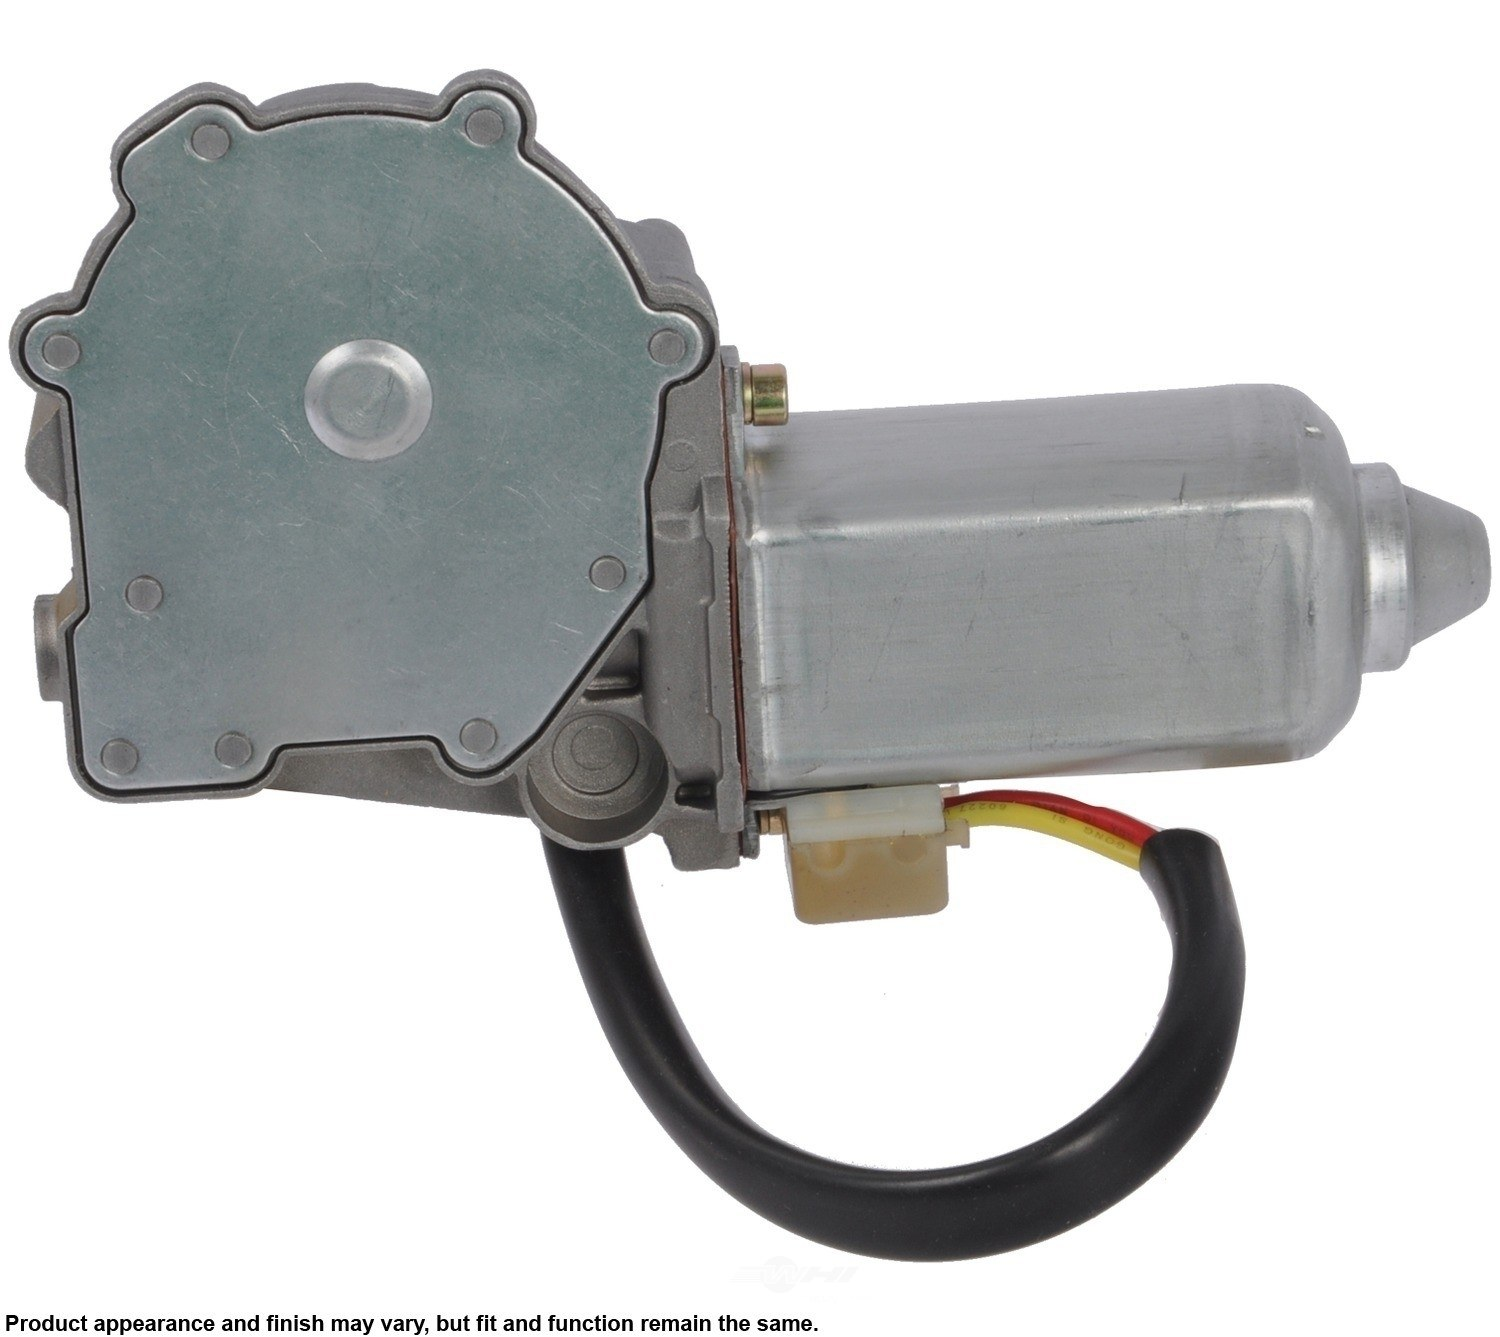 CARDONE NEW - Window Lift Motor (Front Left) - A1S 82-920